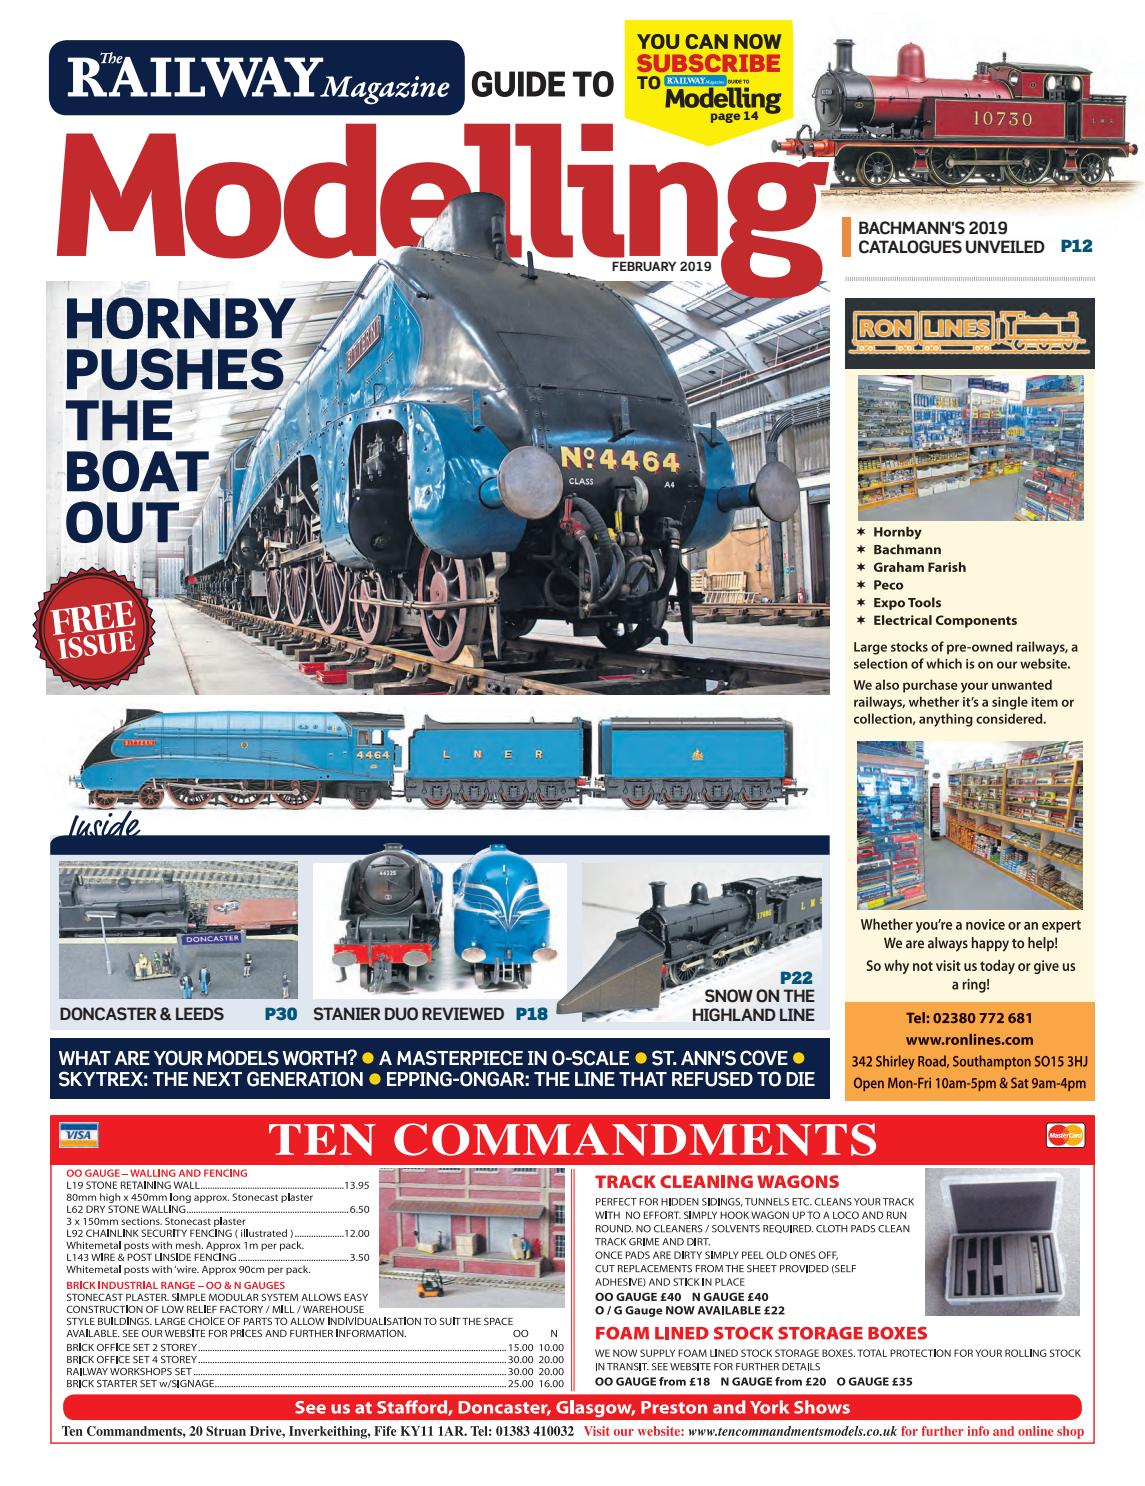 The Railway Magazine Guide to Modelling - February 2019 - Preview by on johnson wiring diagram, razor wiring diagram, lionel wiring diagram, bell wiring diagram, emerson wiring diagram, atlas wiring diagram, american flyer wiring diagram, proto 2000 wiring diagram, braun wiring diagram, digitrax wiring diagram, bosch wiring diagram, harris wiring diagram, apc wiring diagram, ihc wiring diagram, dremel wiring diagram, evergreen wiring diagram, meyer wiring diagram, nce wiring diagram, becker wiring diagram, lgb wiring diagram,